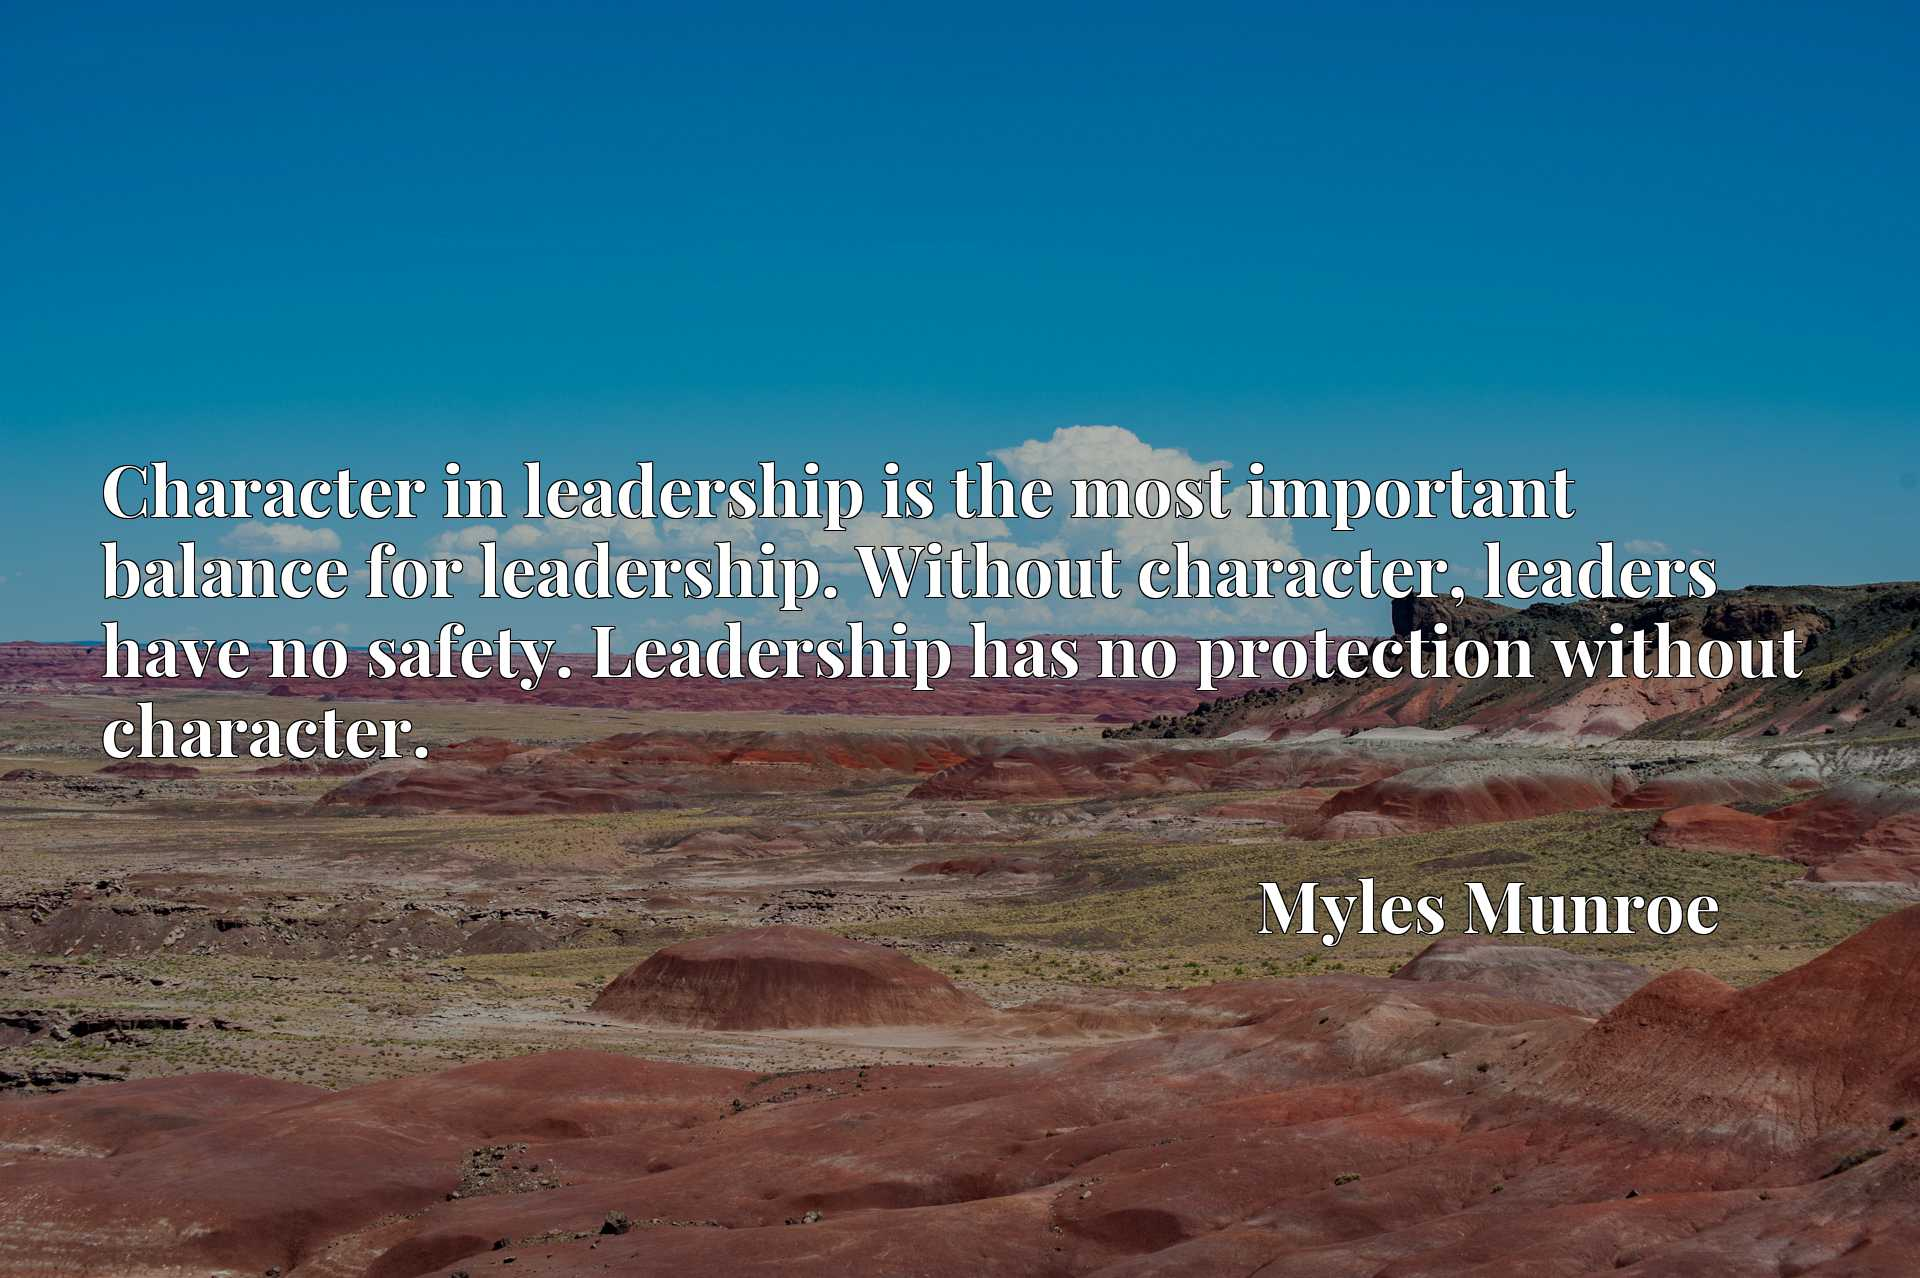 Character in leadership is the most important balance for leadership. Without character, leaders have no safety. Leadership has no protection without character.